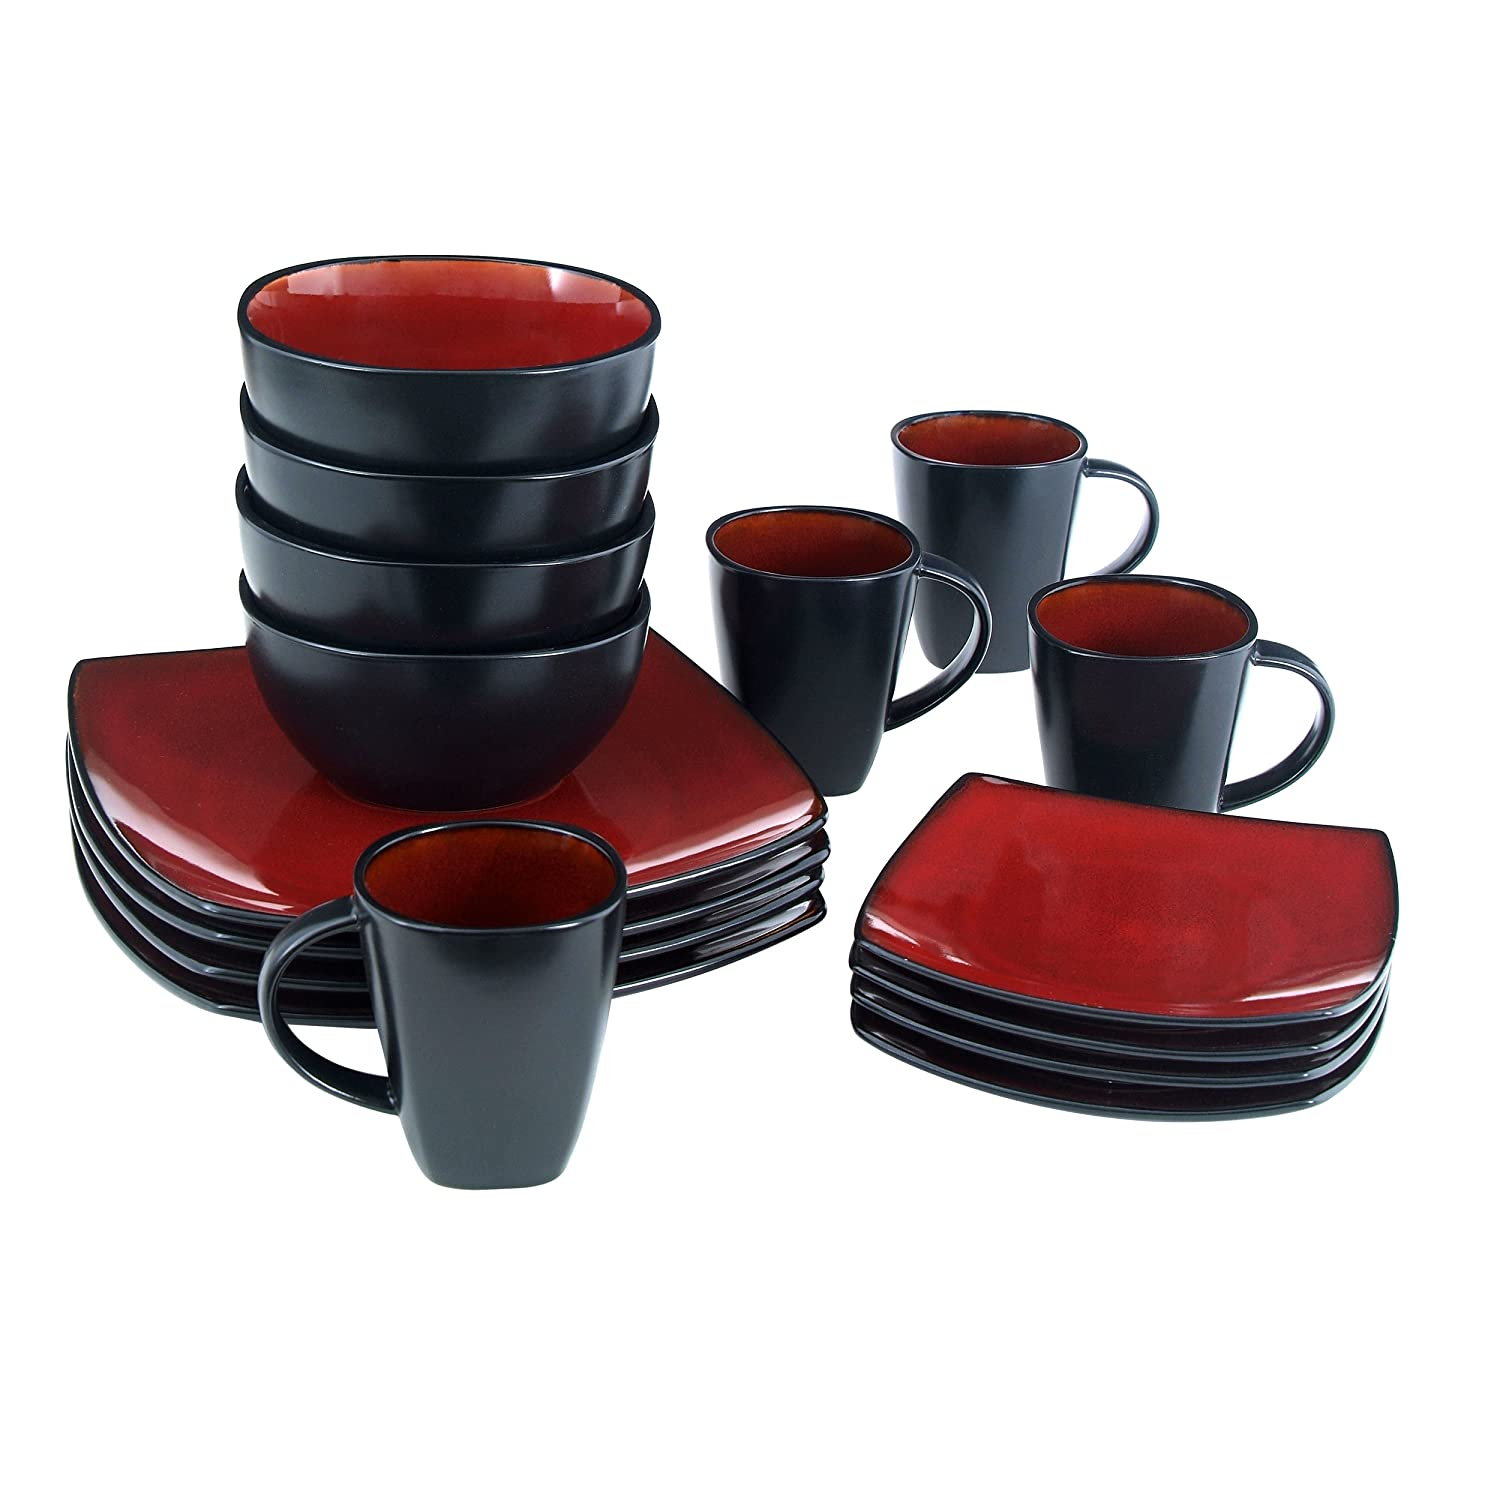 amazoncom gibson soho lounge 16piece square reactive glaze dinnerware set red dinnerware sets